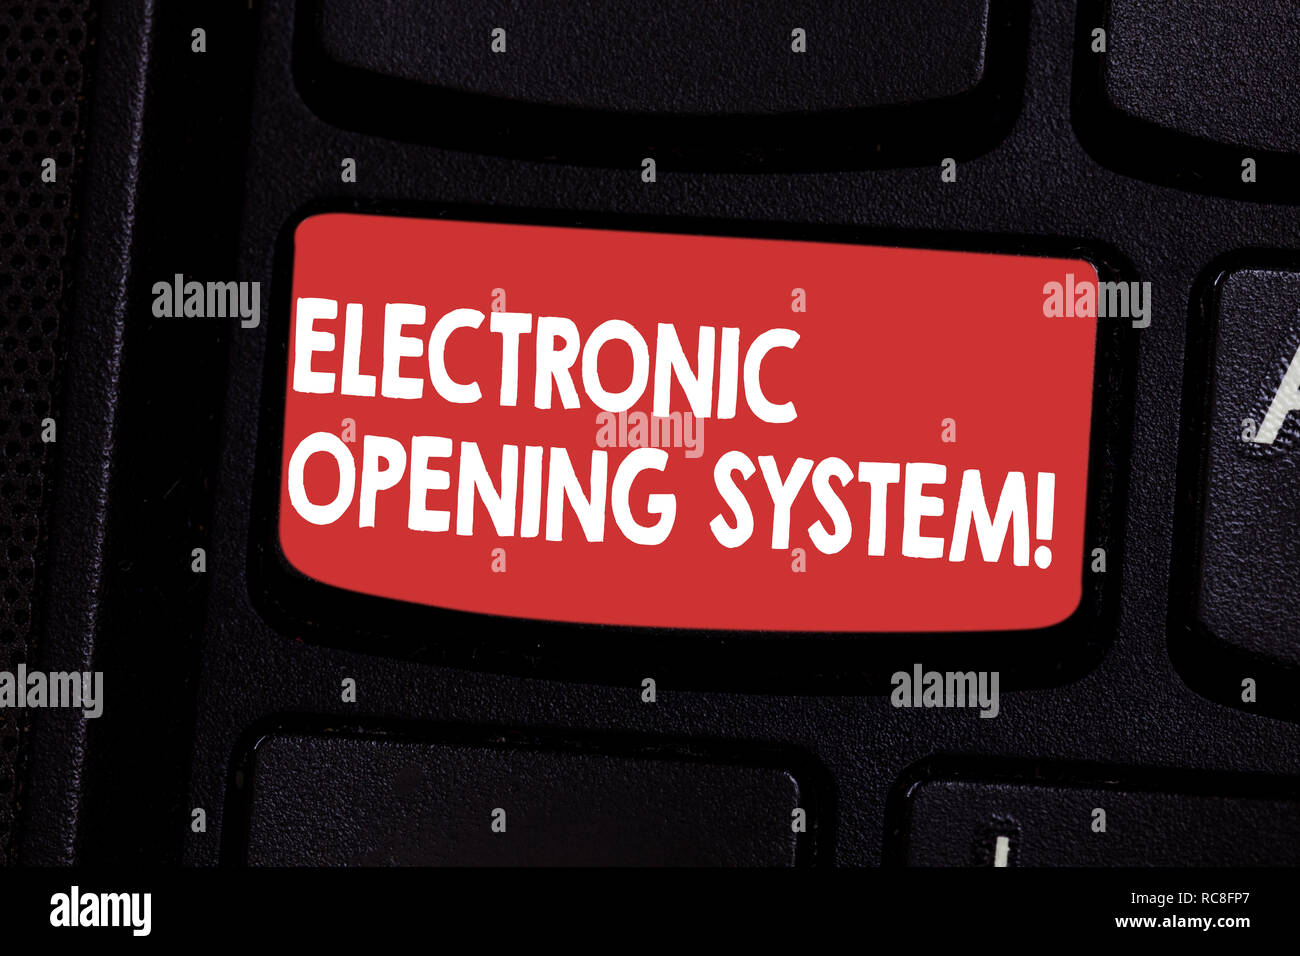 Access Control System Stock Photos & Access Control System